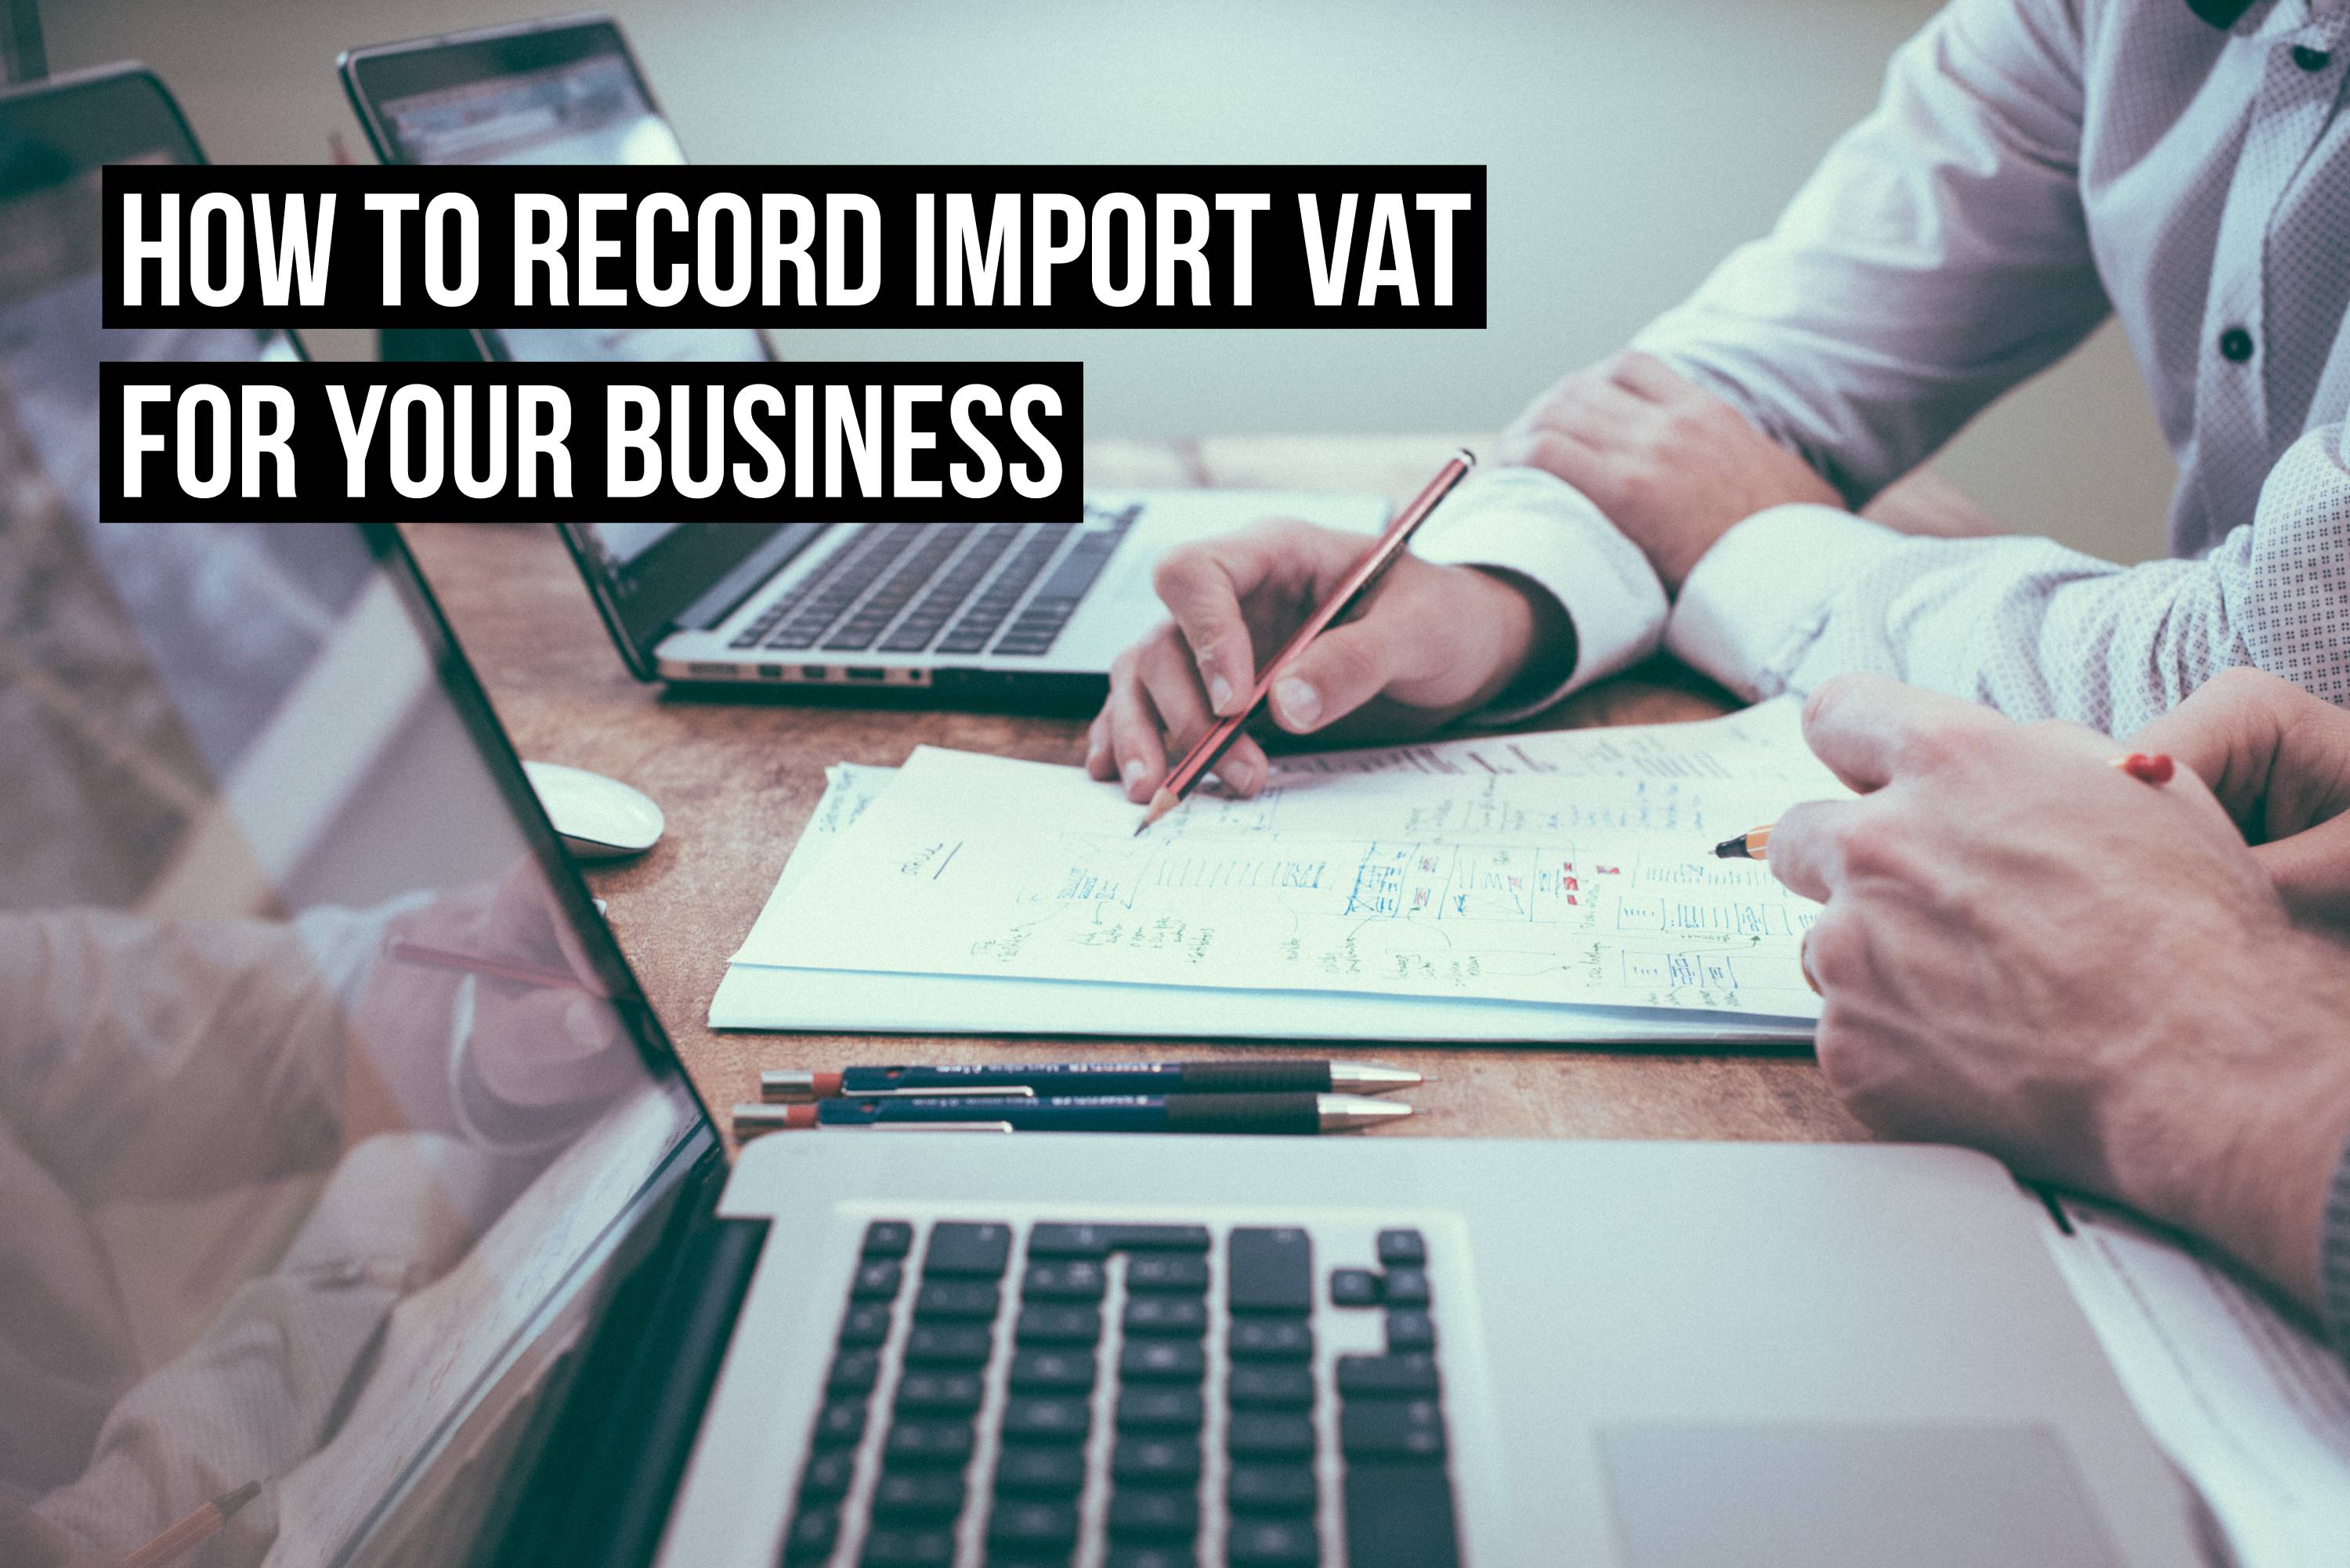 How to record import VAT for your business